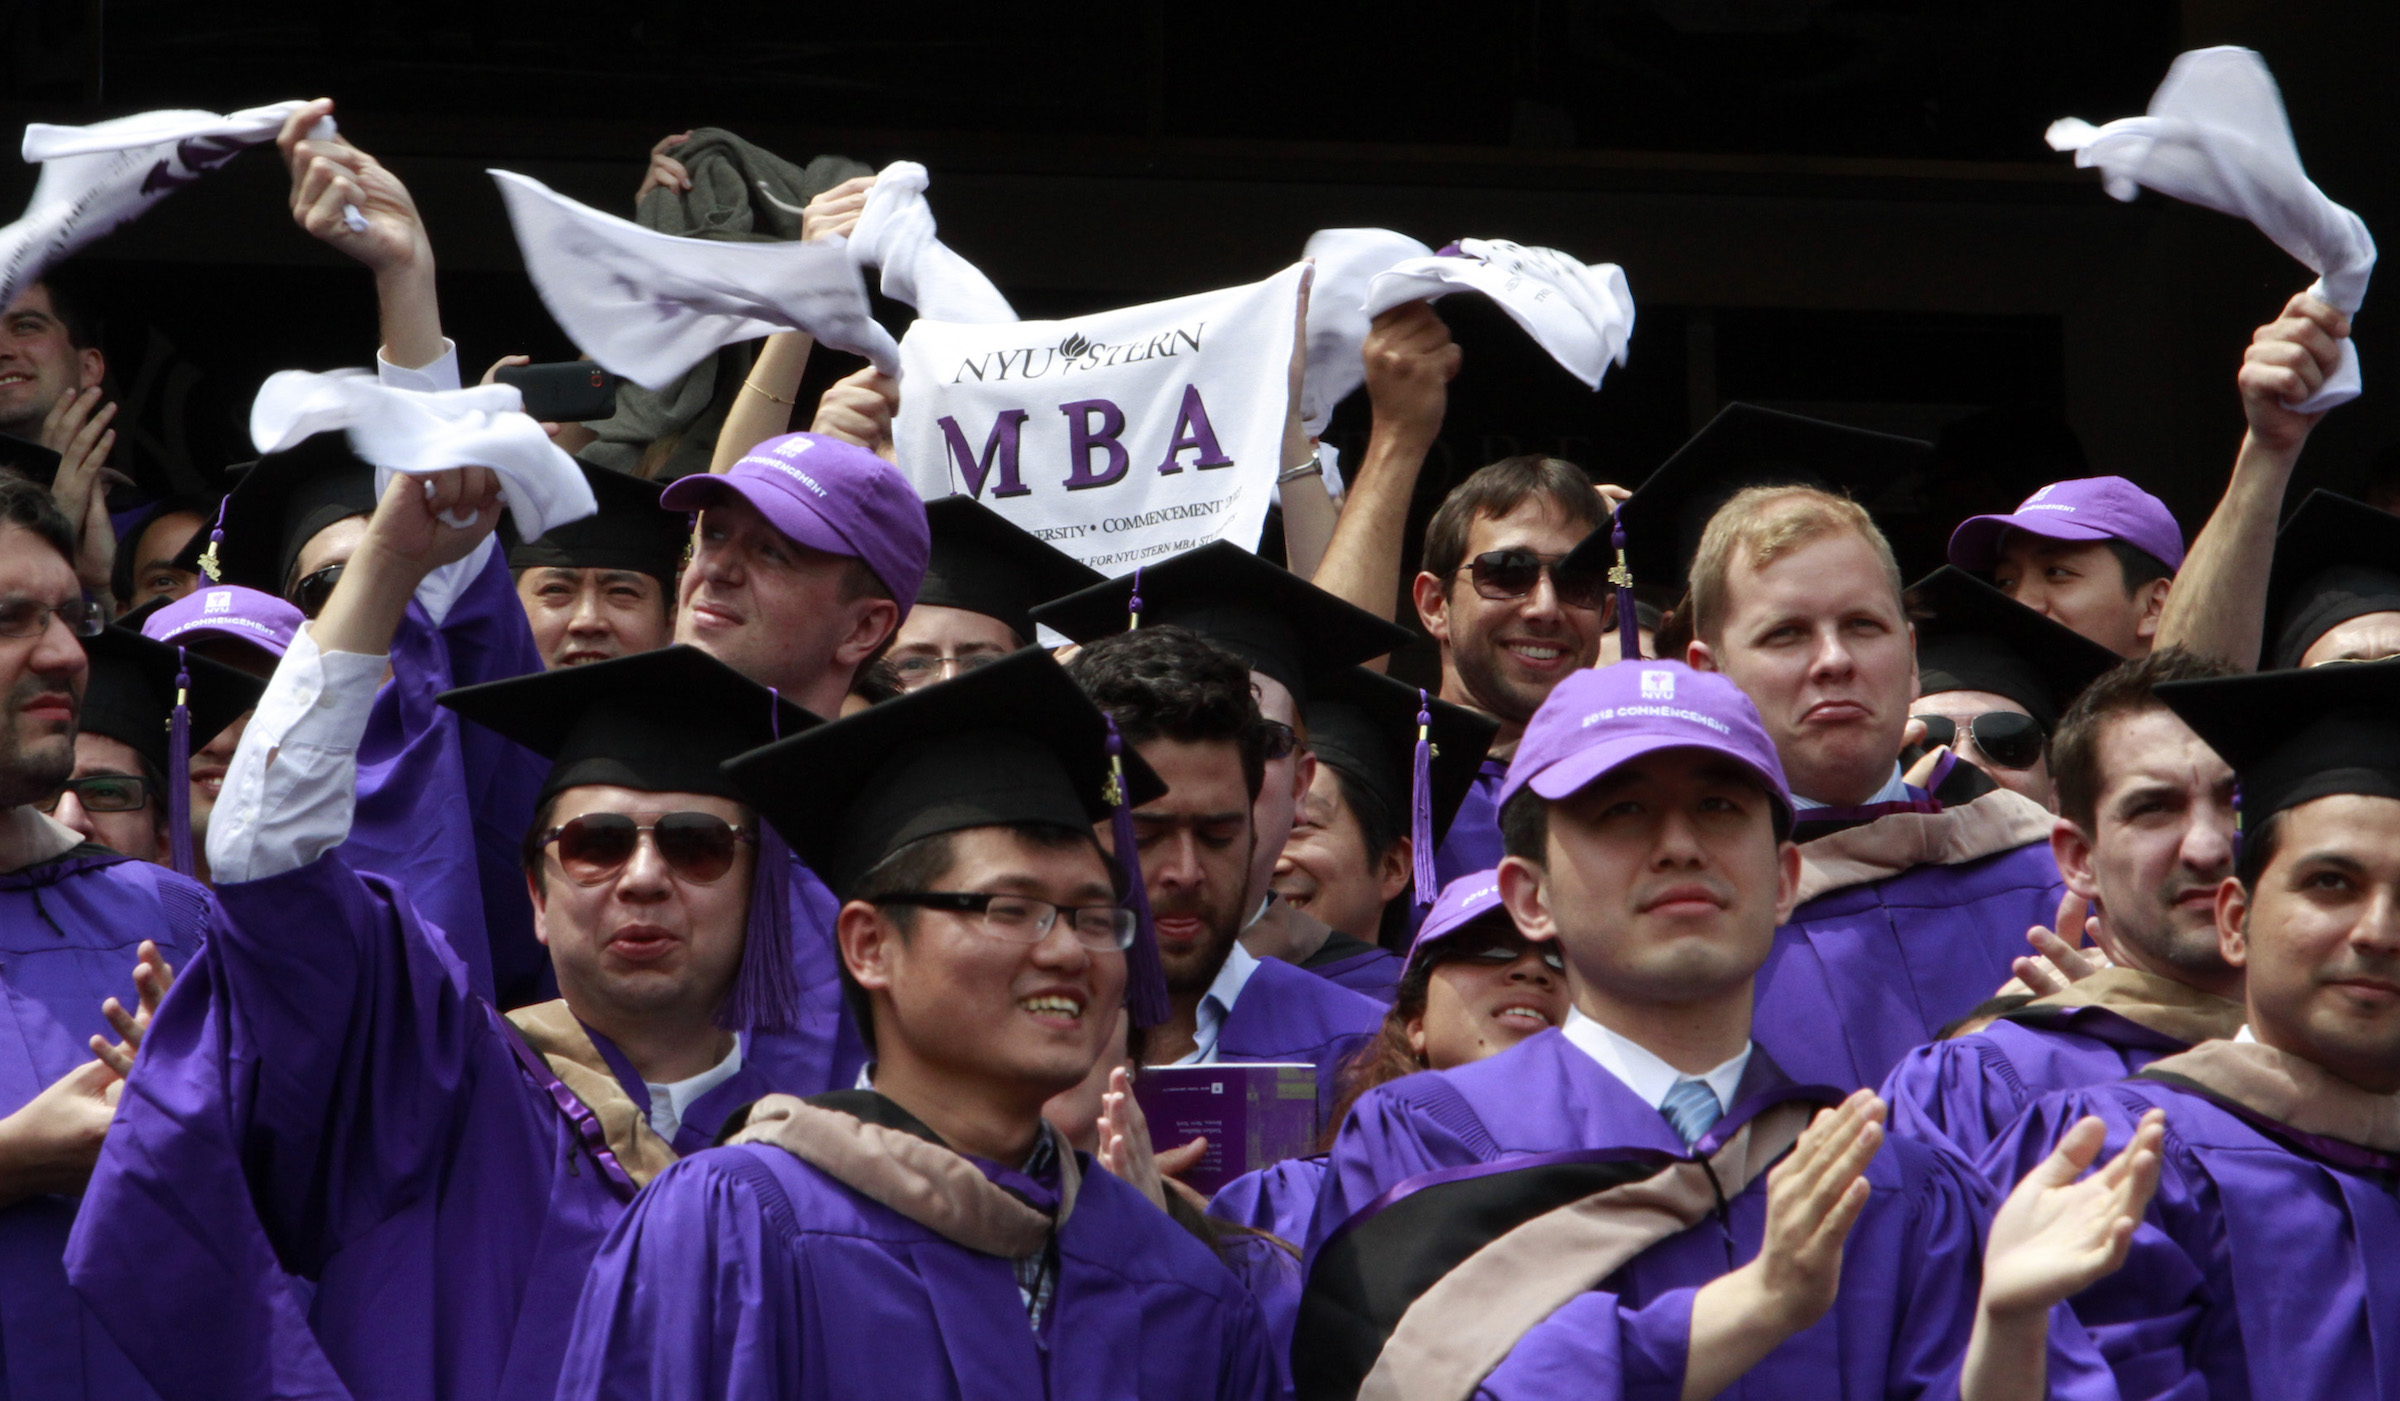 """Graduates from the Leonard N. Stern School of Business cheer and wave """"MBA"""" towels as they are declared degree candidates, during the New York University 180th commencement ceremony at Yankee Stadium on Wednesday, May 16, 2012 in New York."""